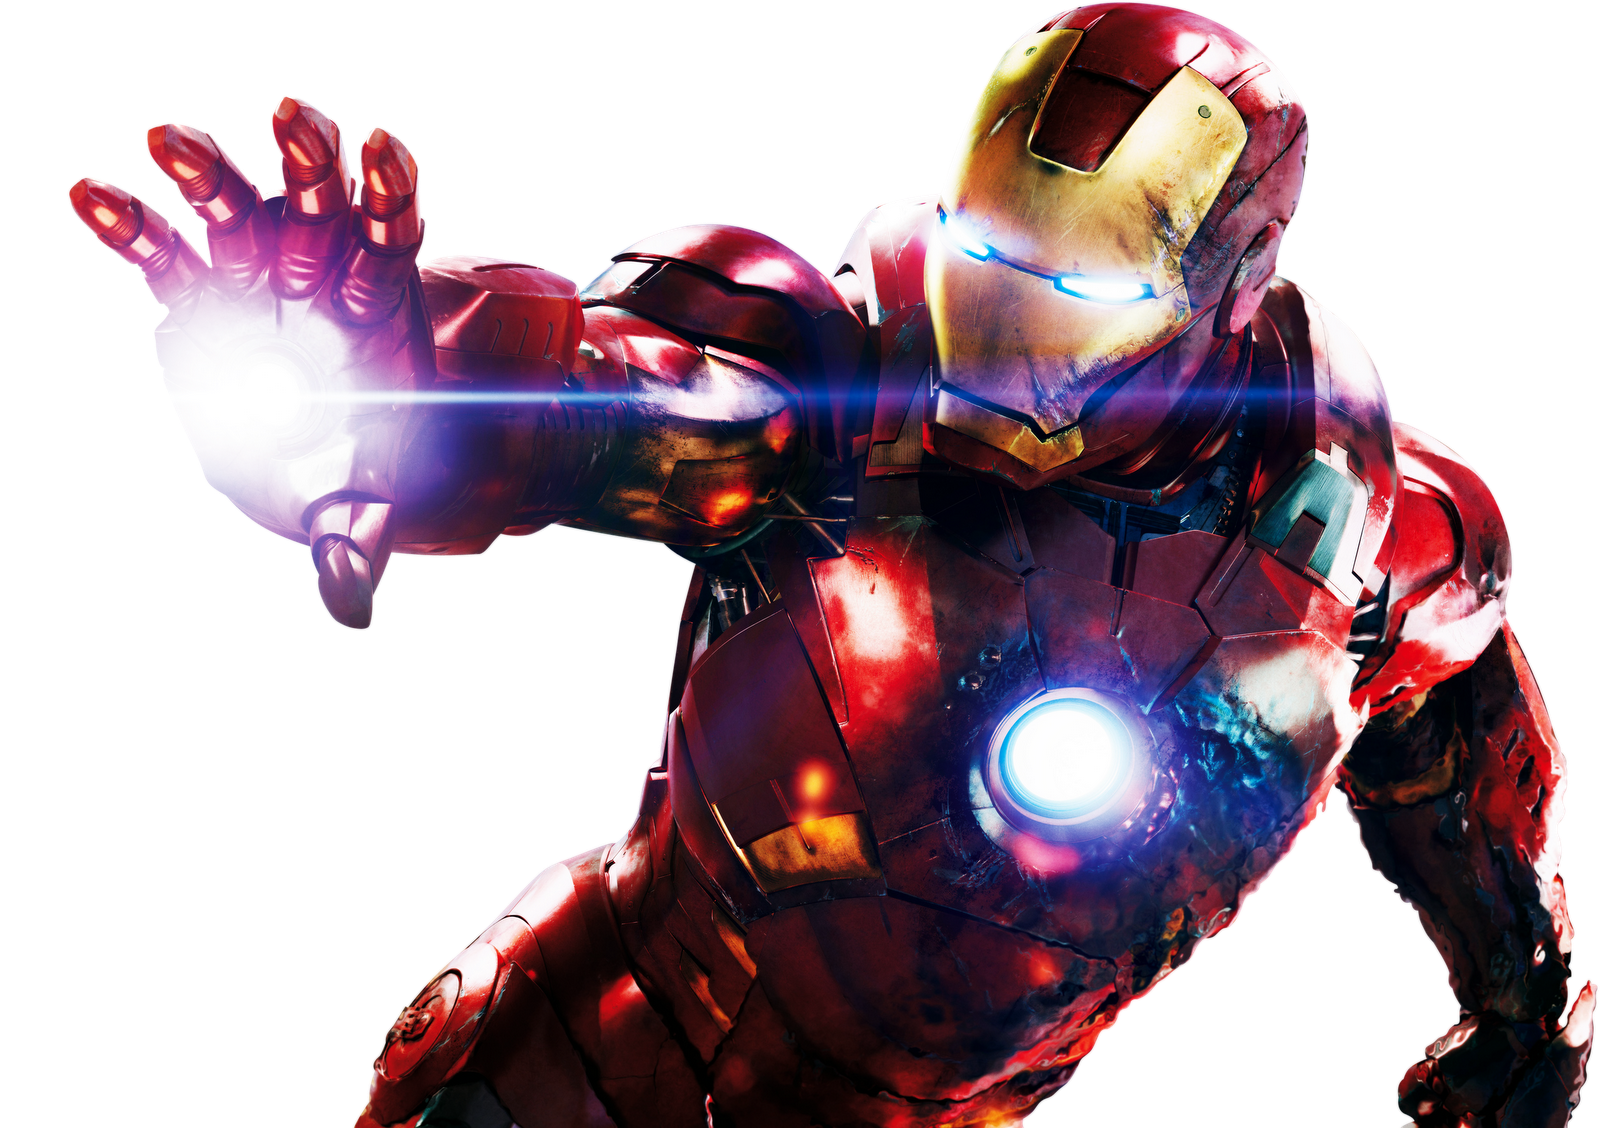 Iron Man Png image #13124 - Iron Man PNG